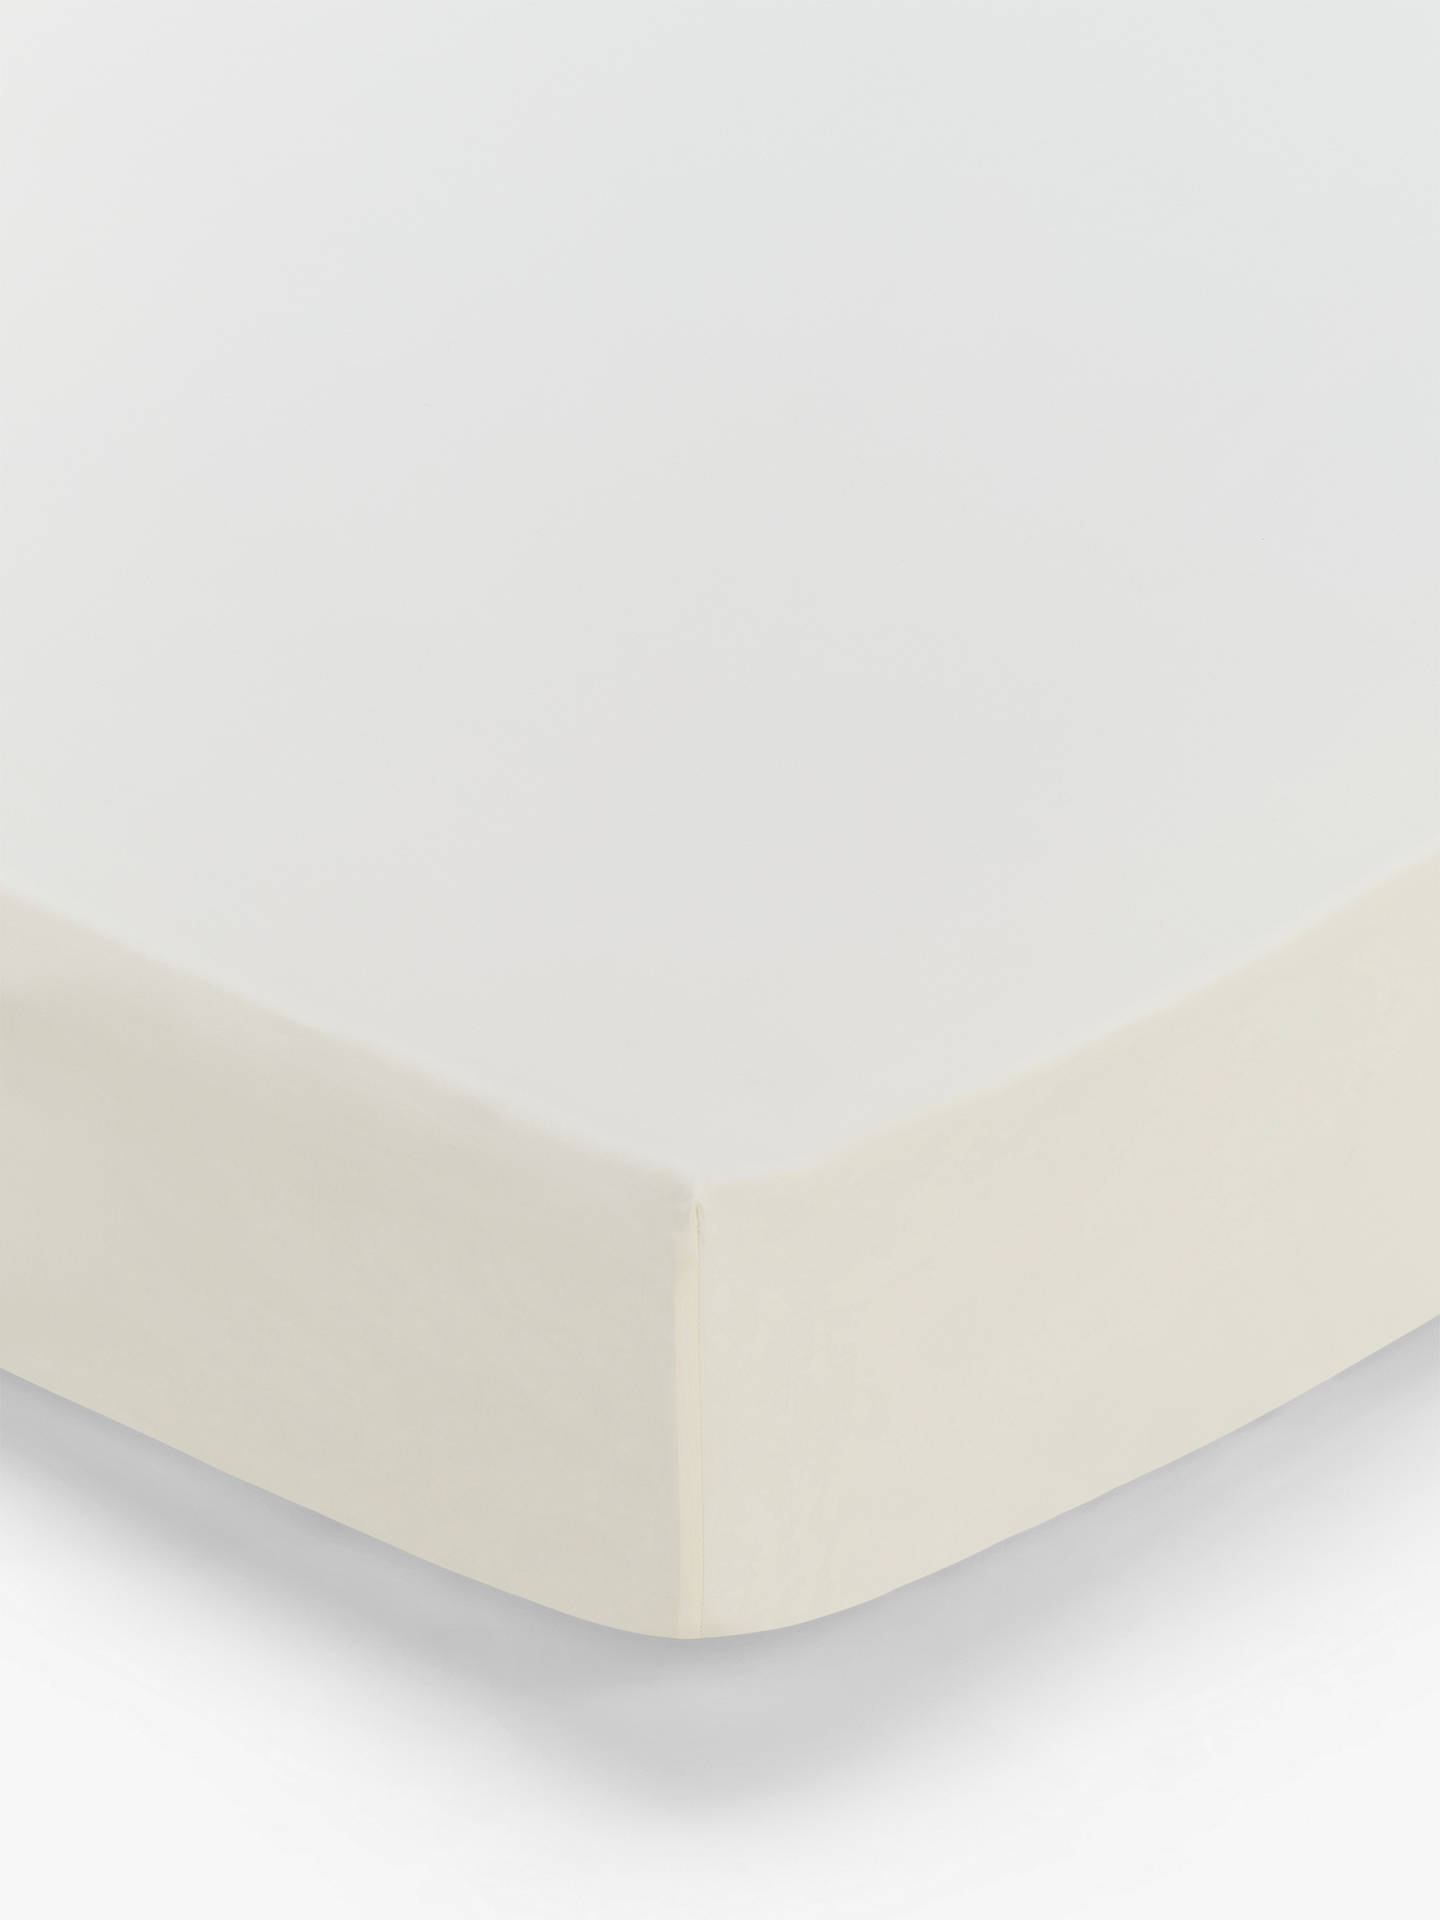 Buy John Lewis & Partners 200 Thread Count Cotton Standard Fitted Sheet, Double, Cream Online at johnlewis.com